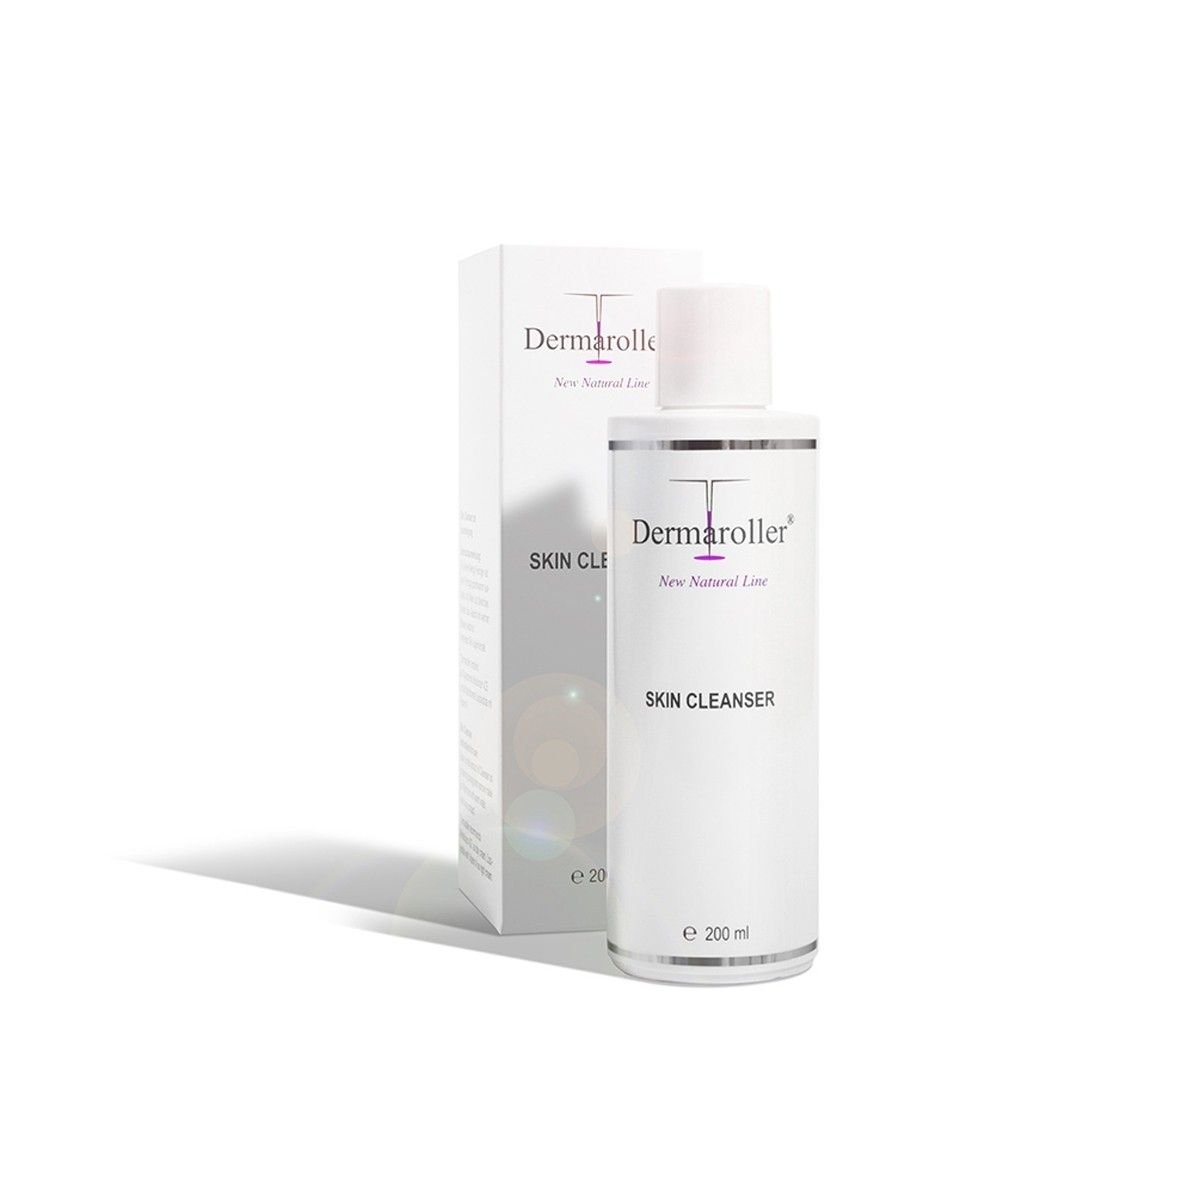 Afbeelding van Dermaroller New Natural Line Skin Cleanser Reiniging Beauty